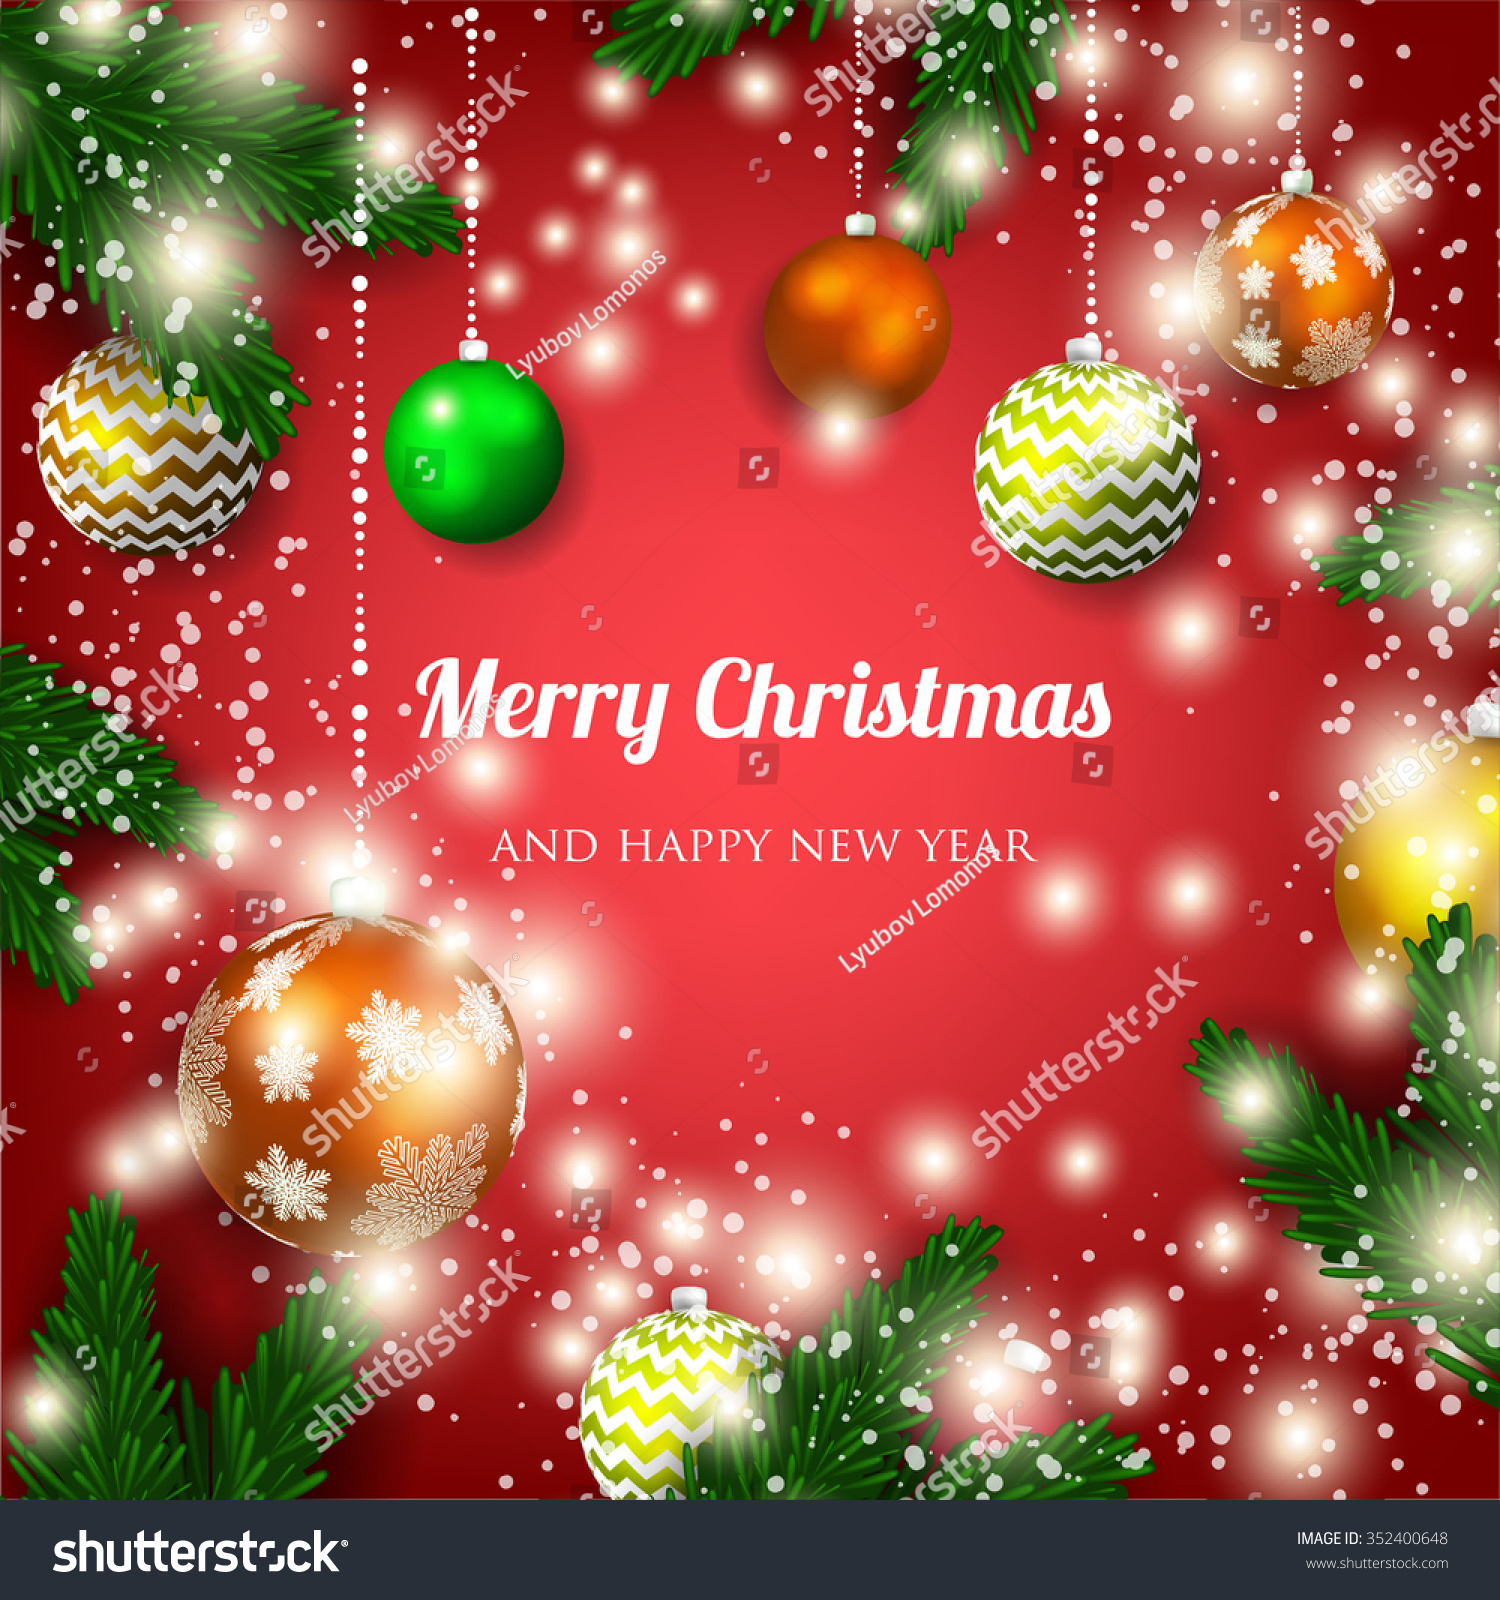 Merry christmas happy new year card stock vector 352400648 merry christmas and happy new year card kristyandbryce Choice Image